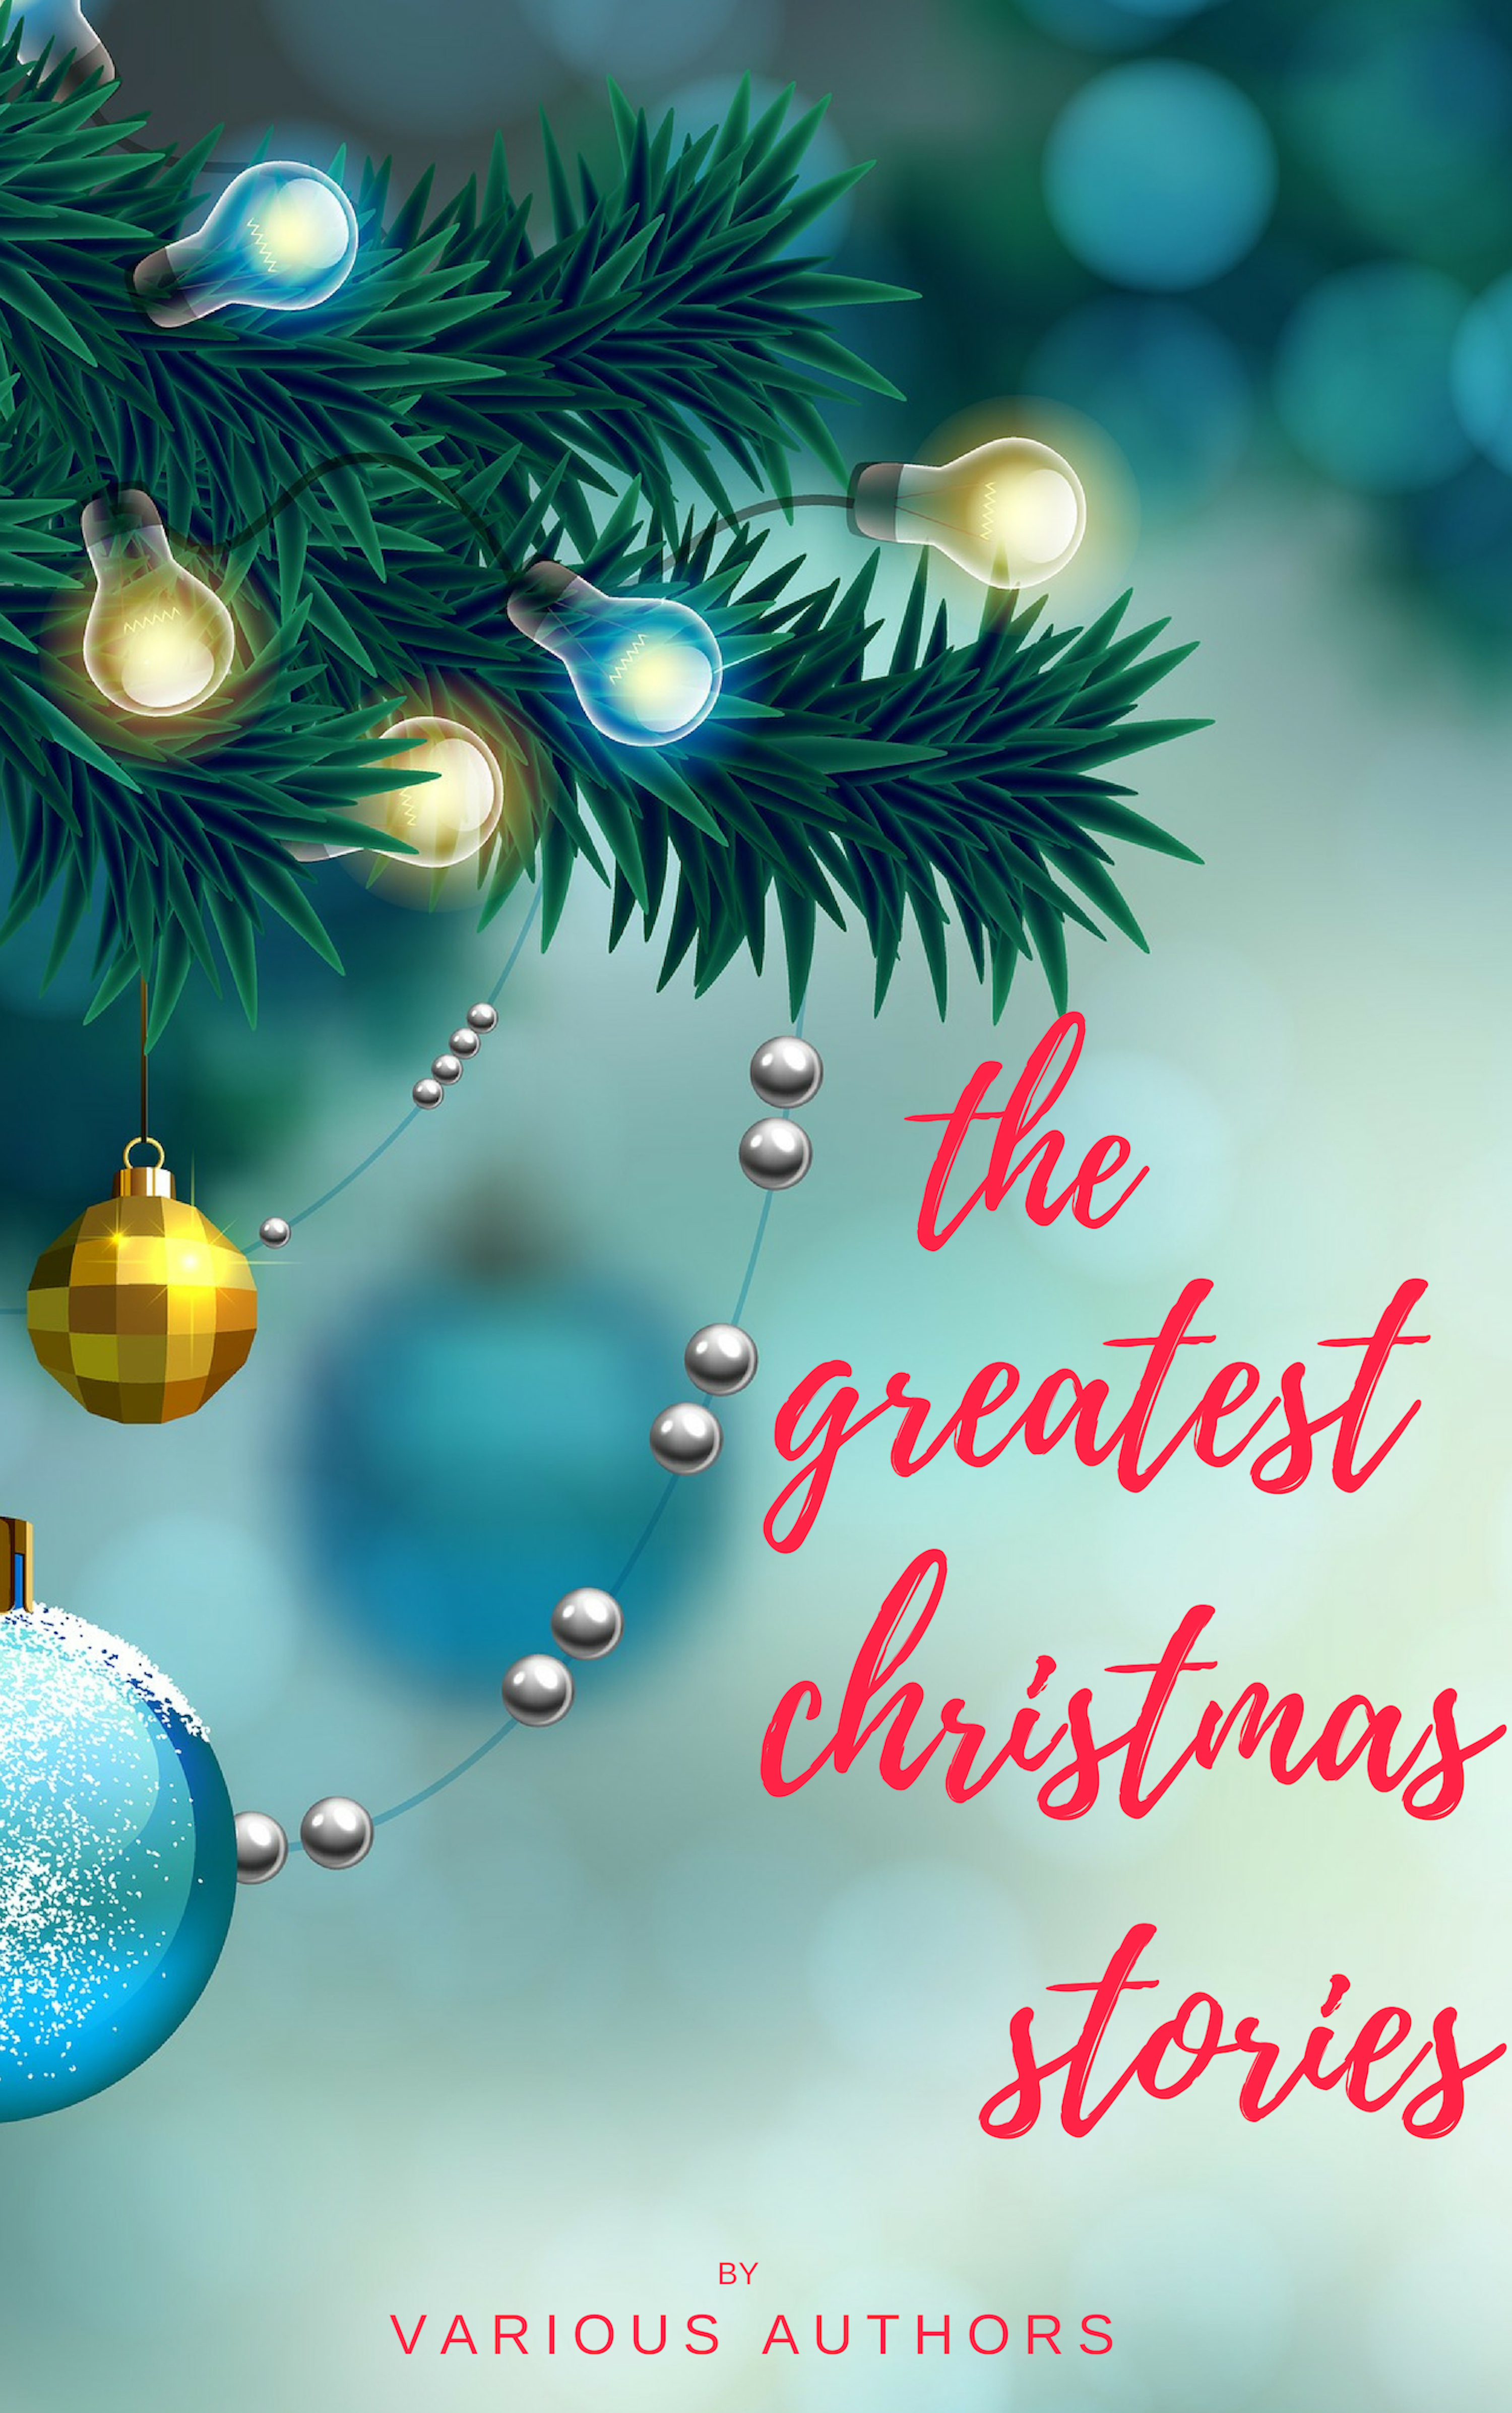 Лаймен Фрэнк Баум The Greatest Christmas Stories: 120+ Authors, 250+ Magical Christmas Stories berens edward christmas stories